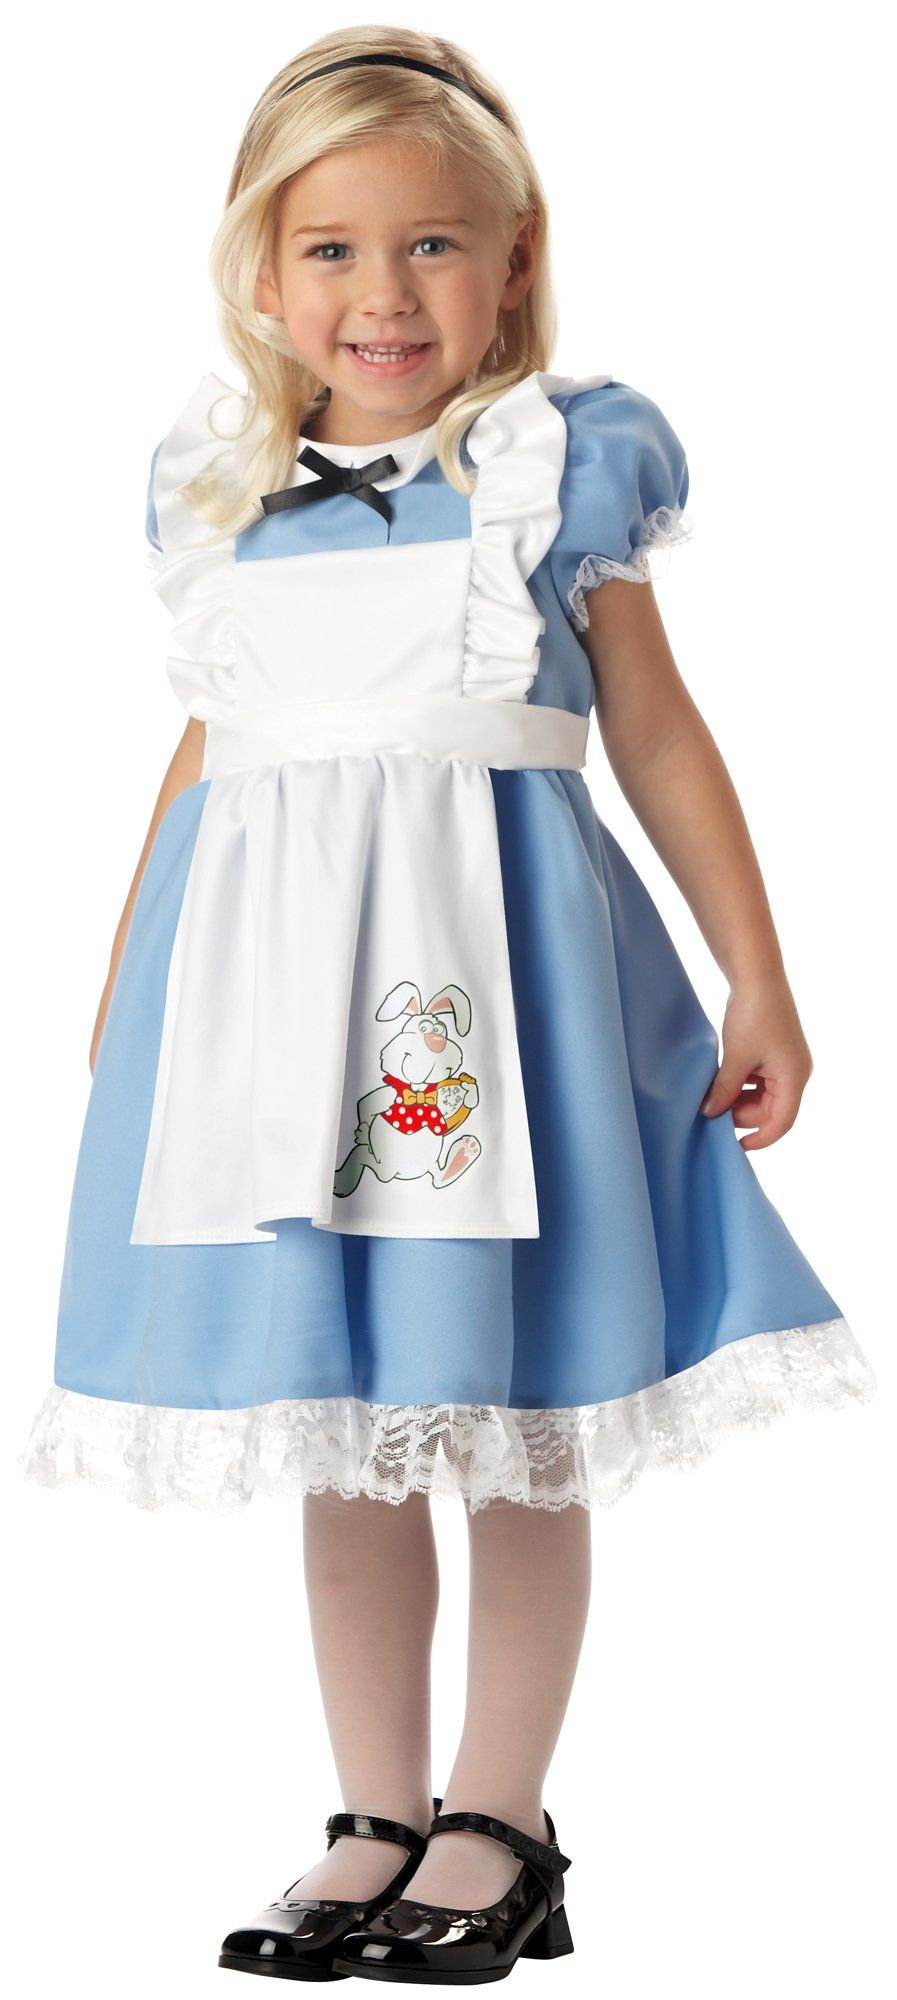 White apron alice wonderland costume - Little Alice In Wonderland Toddler Costume Includes Adorable Blue Dress With White Apron With Bunny Print And Matching Black Headband